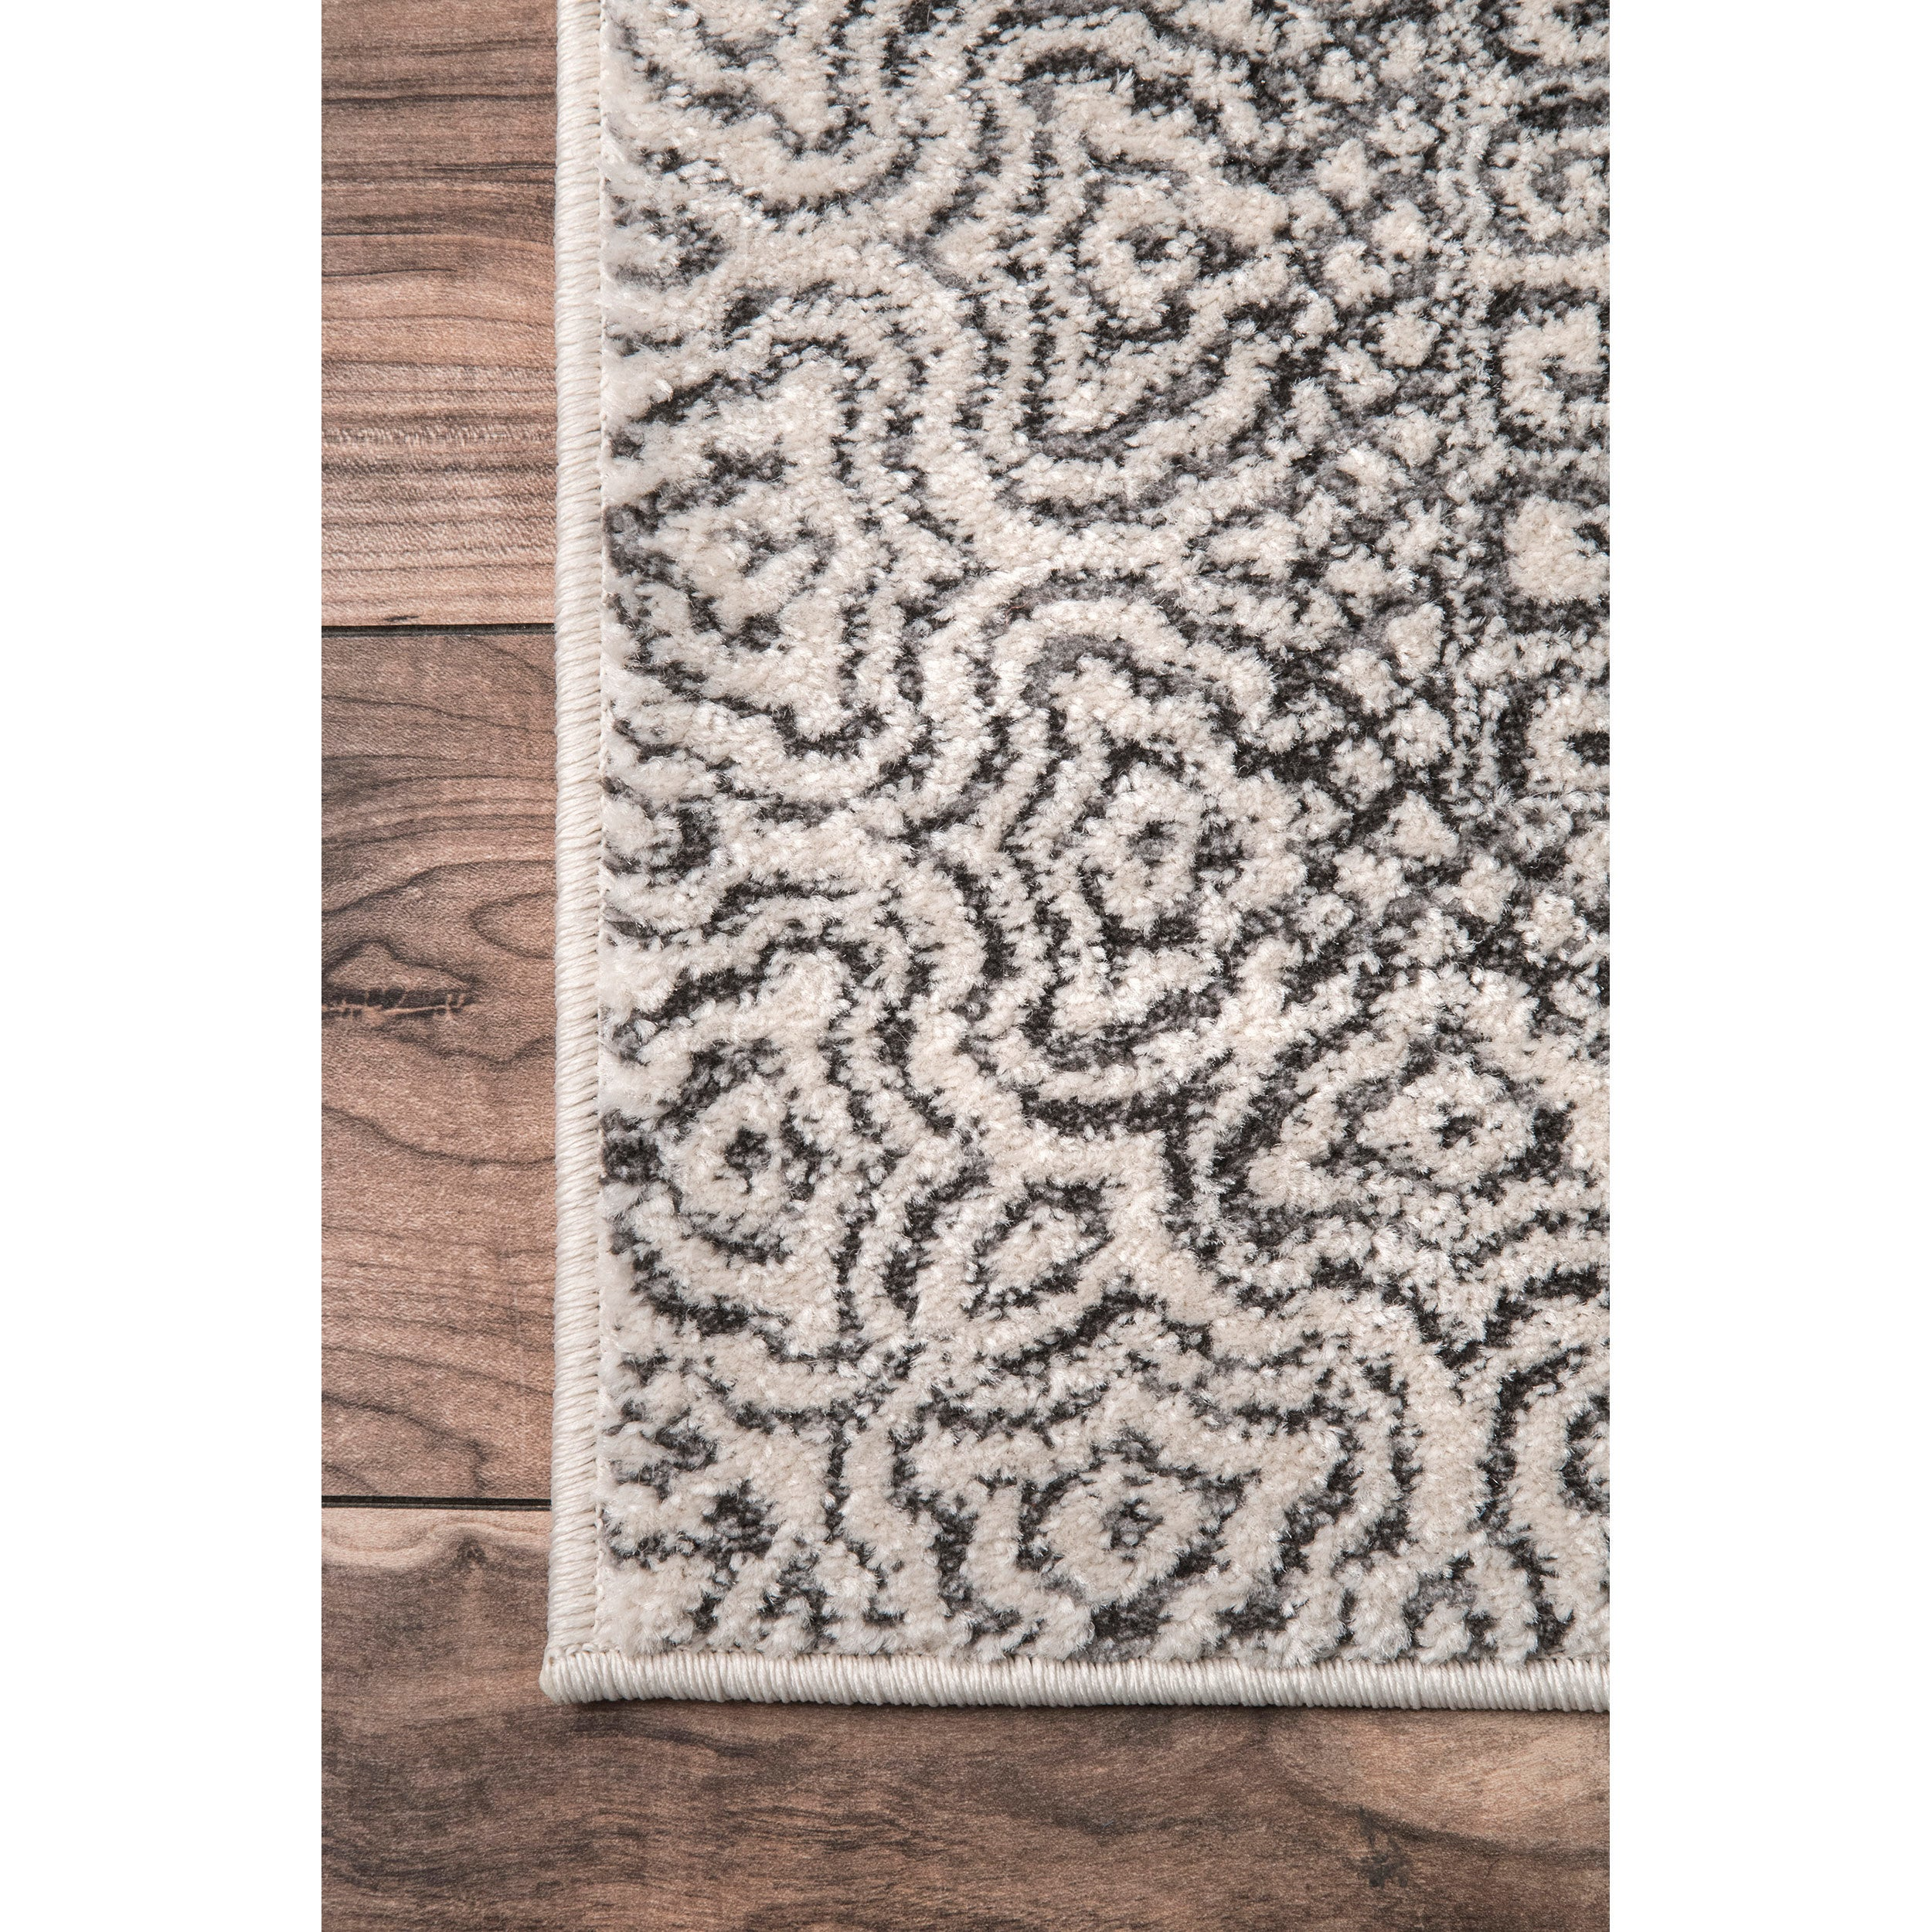 Nuloom Aztec Light Grey Print Area Rug 5 X 7 On Free Shipping Today 19893157